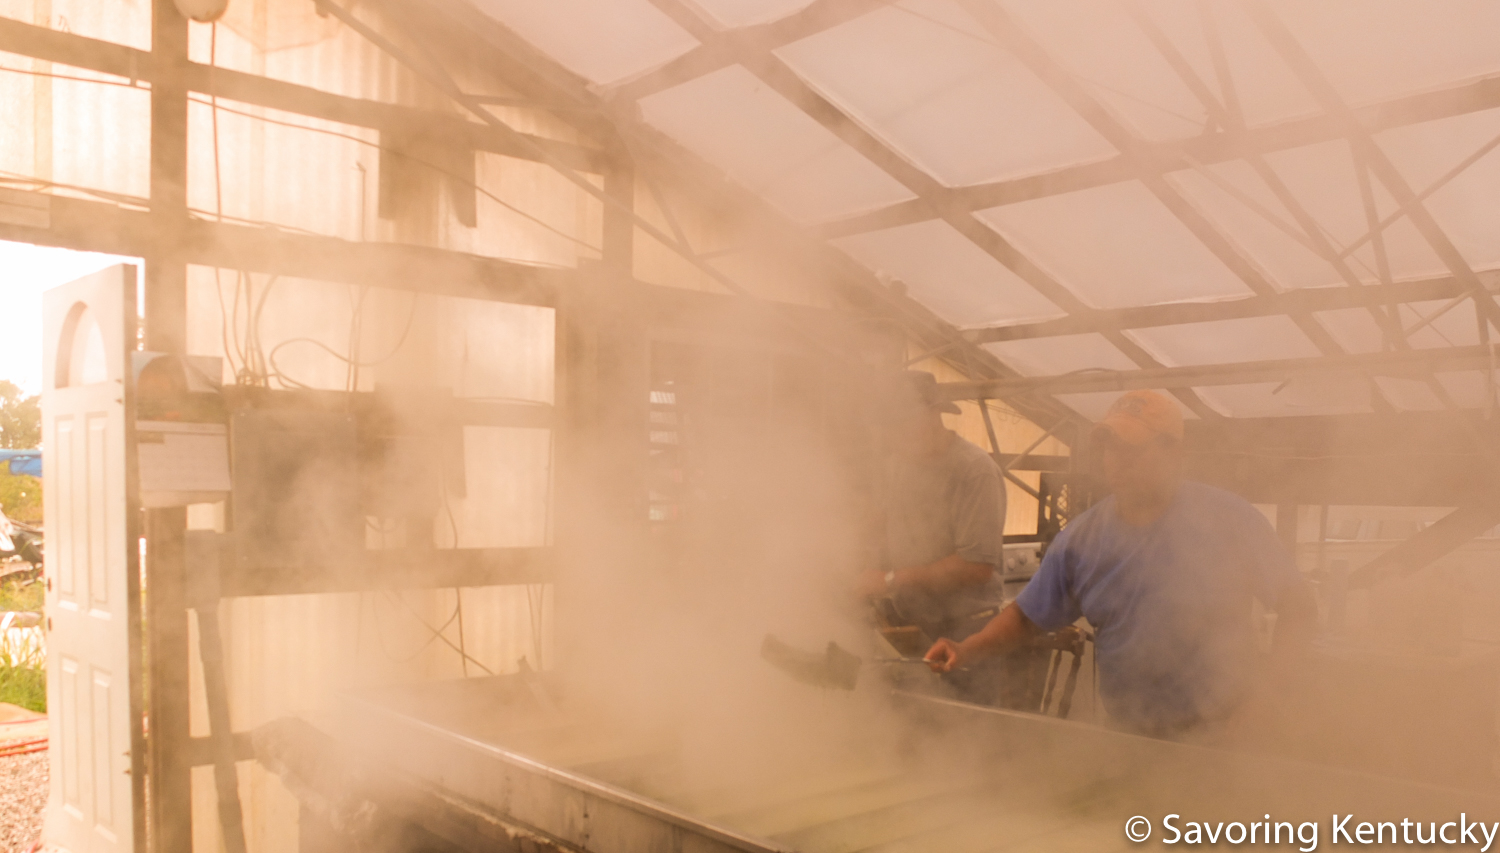 Cooking Country Rock sorghum in Woodford County, Kentucky